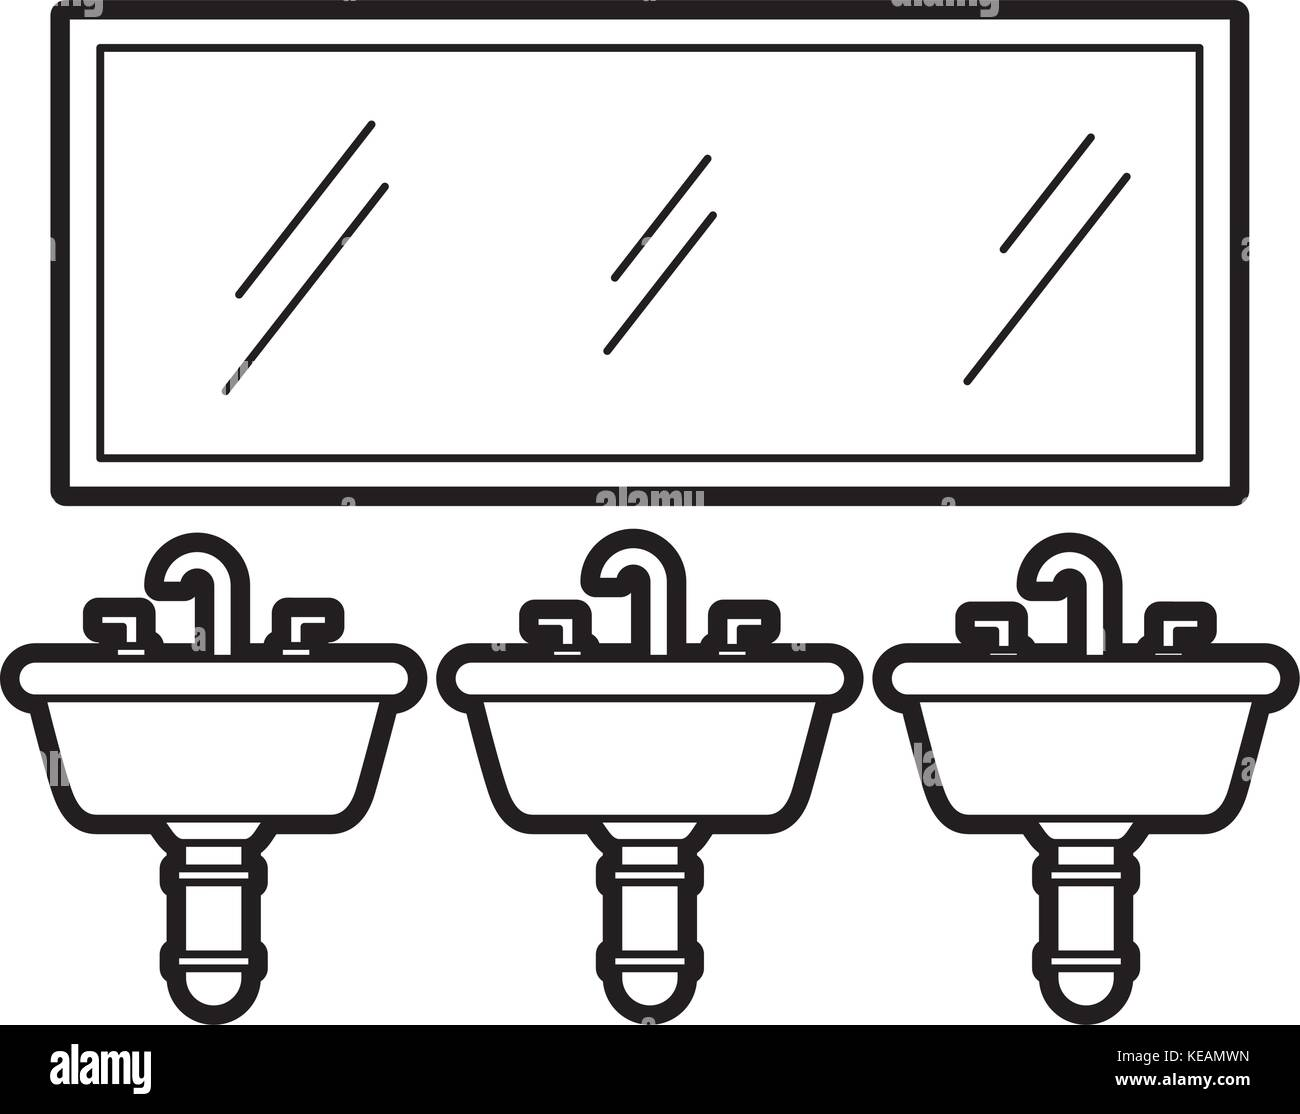 Public Toilet Black And White Stock Photos Images Alamy Hardware Block Diagram Of Free Download Wiring Three Sink Mirror For Bathroom Equipment Image